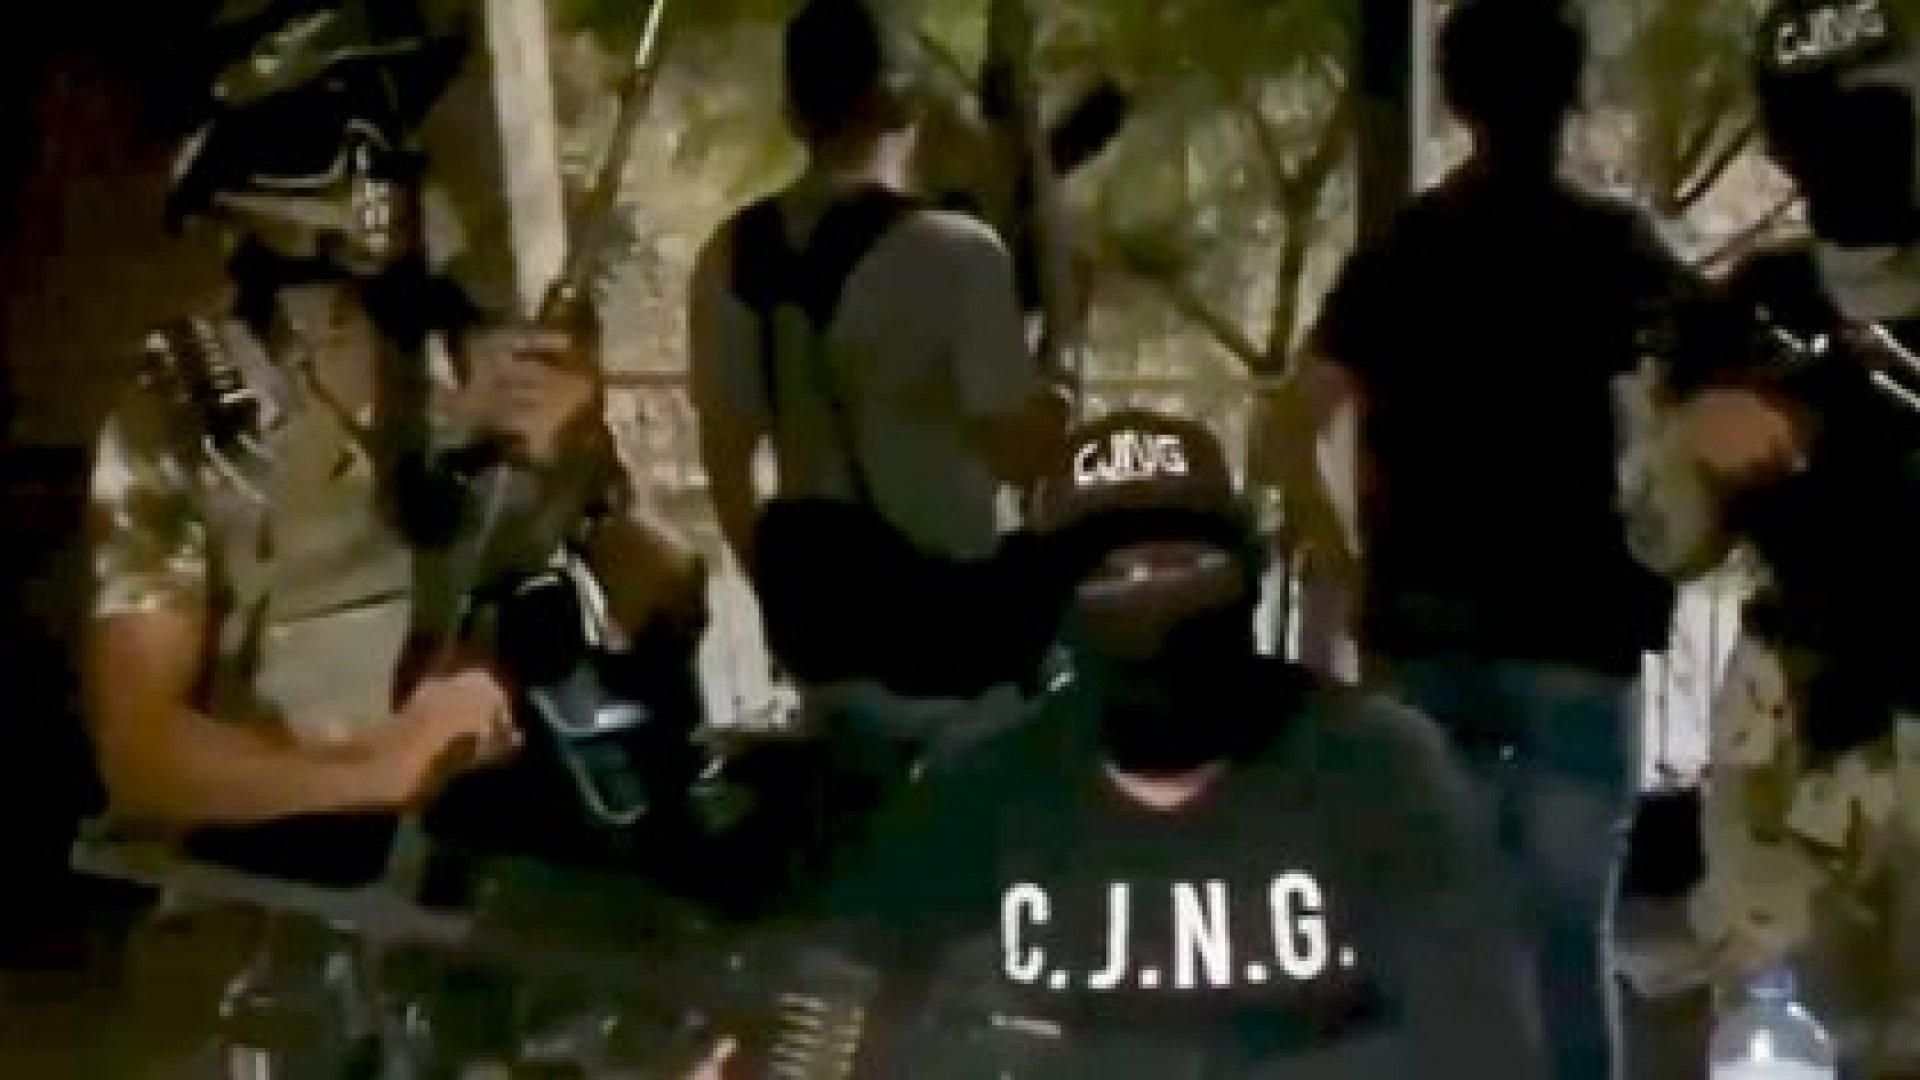 A group identified as part of the CJNG launched threats at Mayo Zambada.